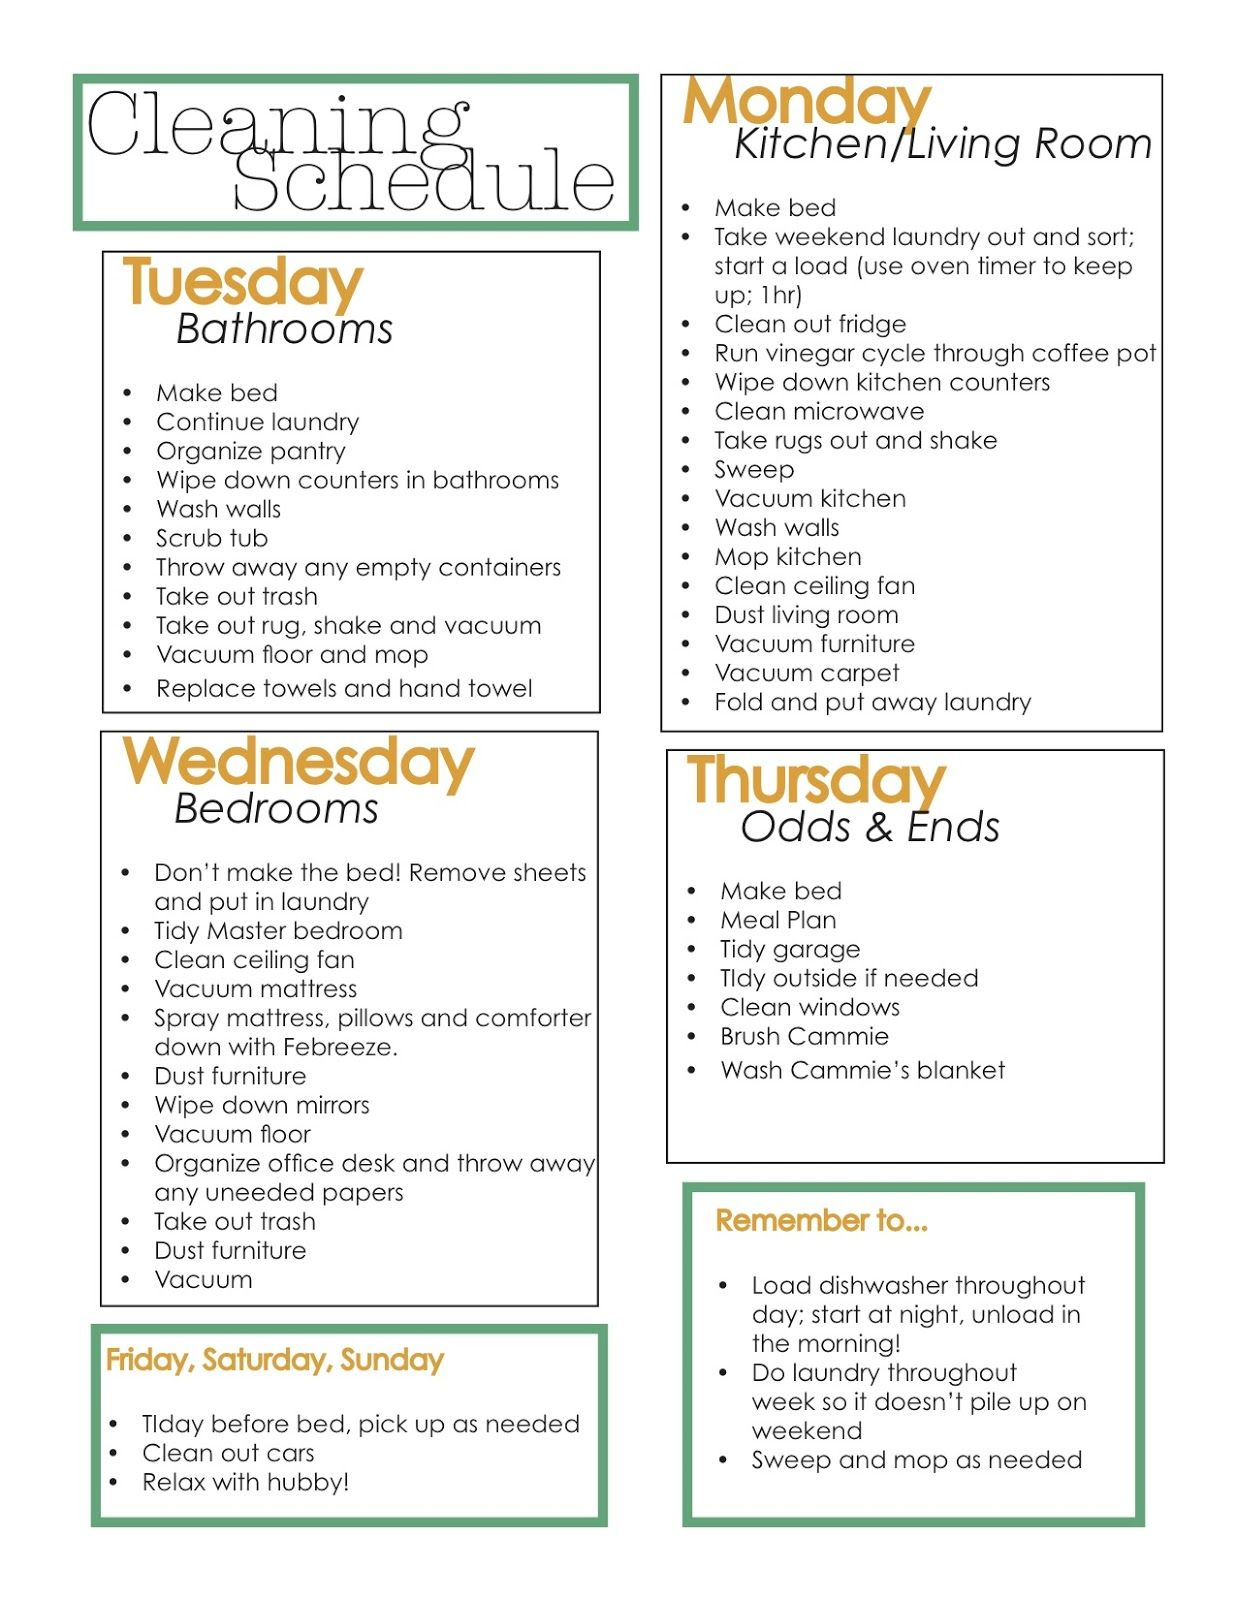 Weekly cleaning schedule template excel zrom kids chore schedule template maxwellsz